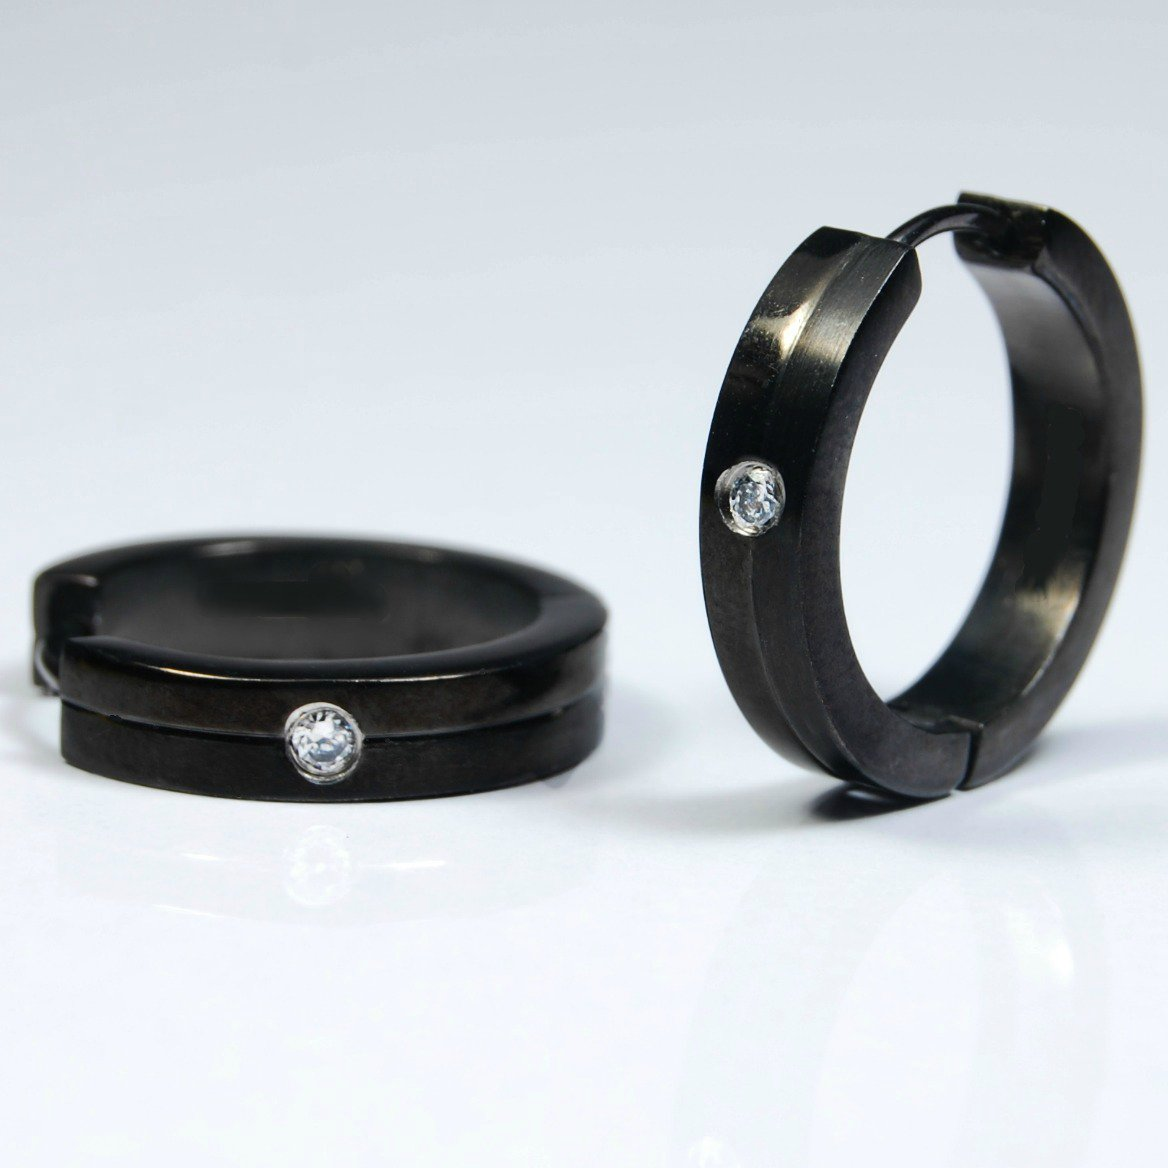 Men's hoop earrings, extra large black stainless steel hoops with cz diamond accent, EC194A